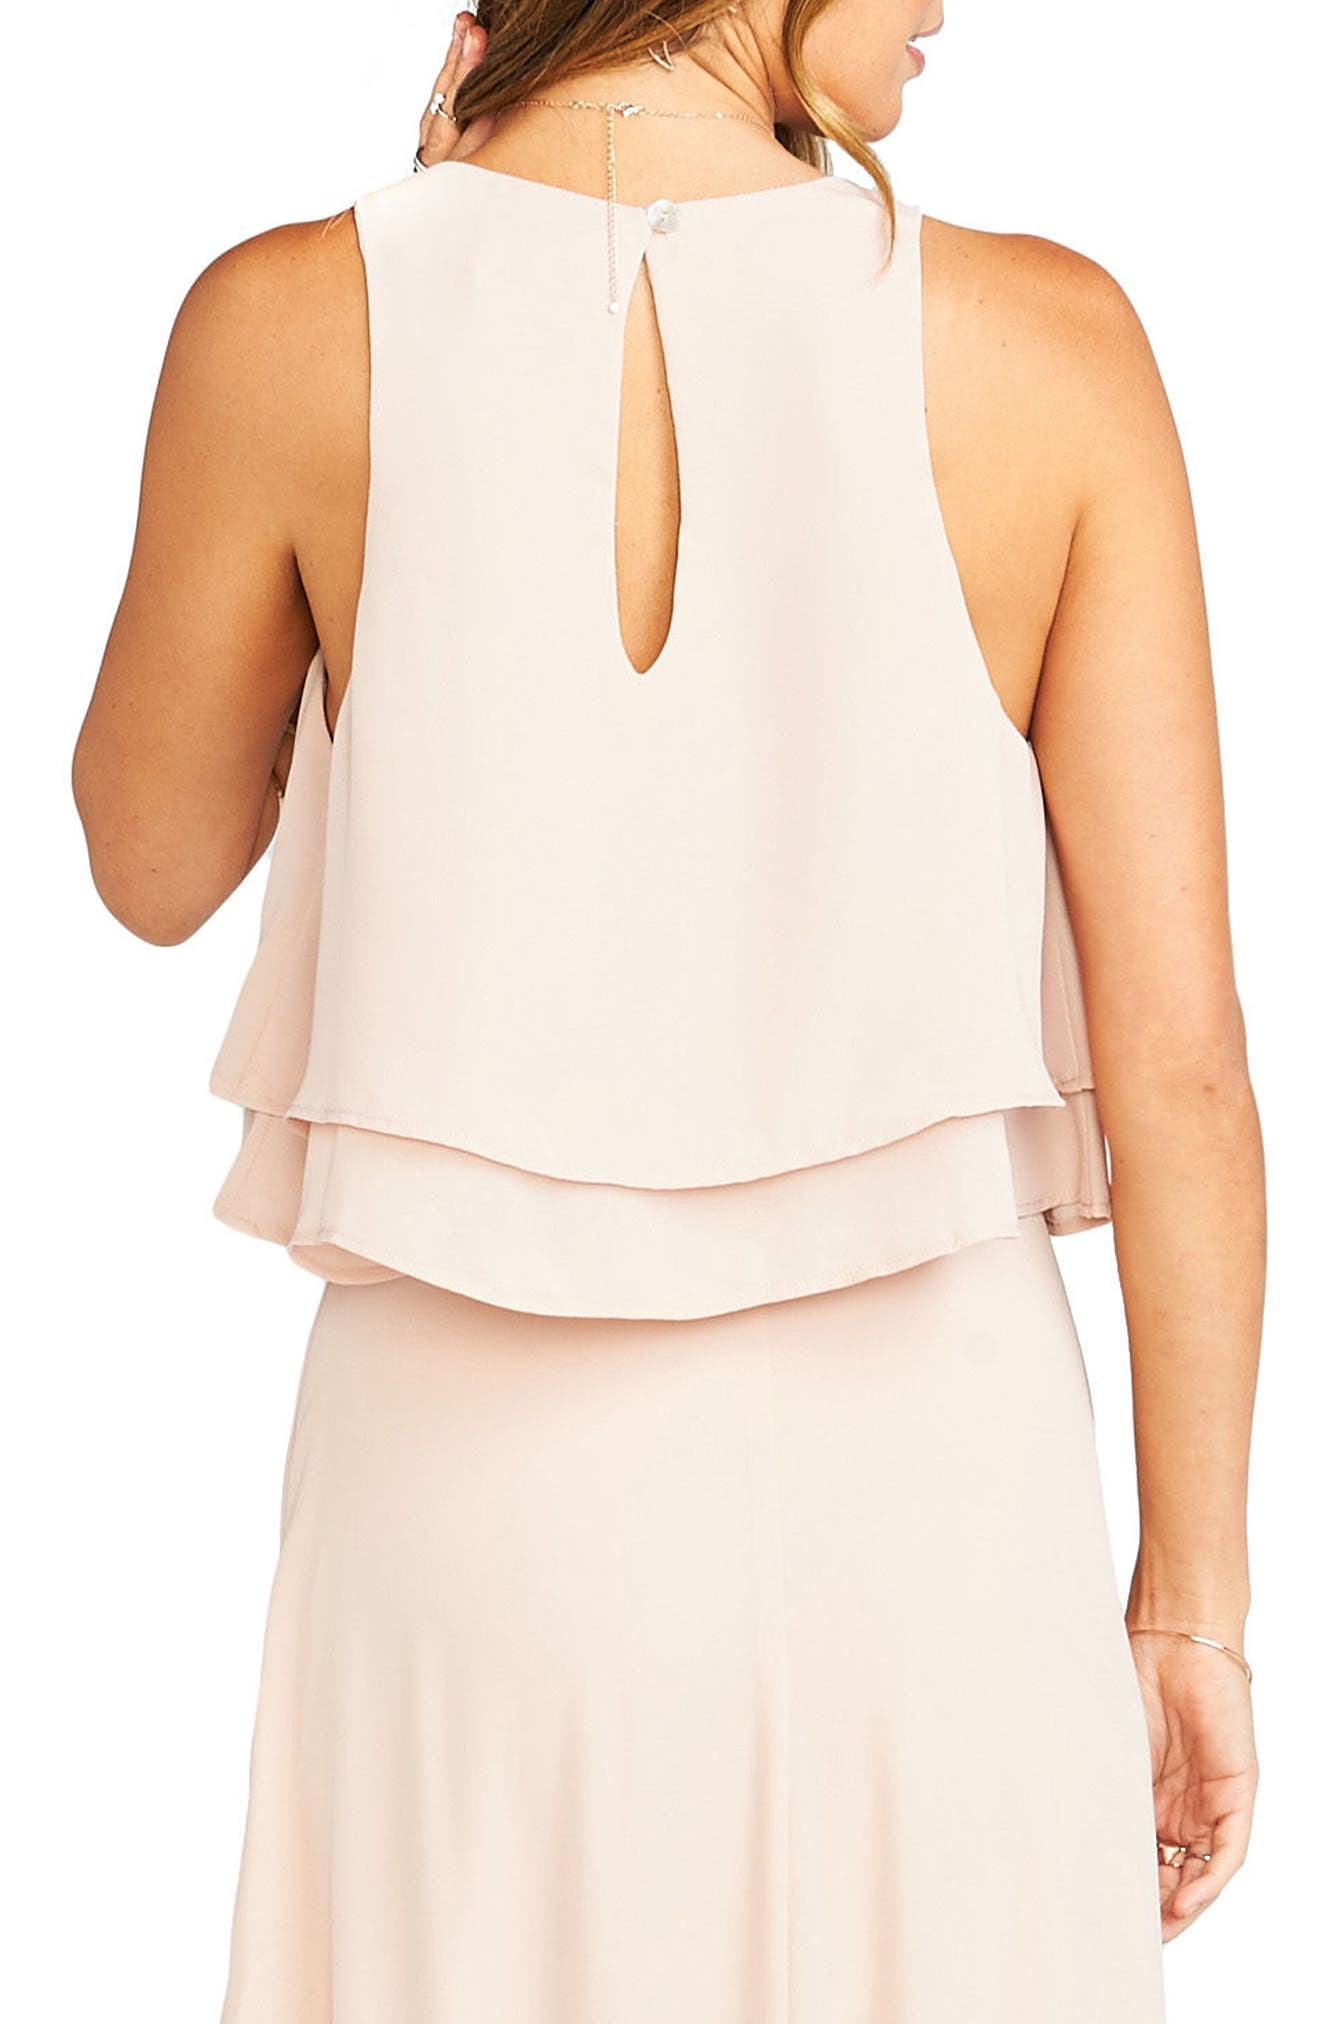 'King' Tiered Chiffon Crop Top,                             Alternate thumbnail 2, color,                             Dusty Blush